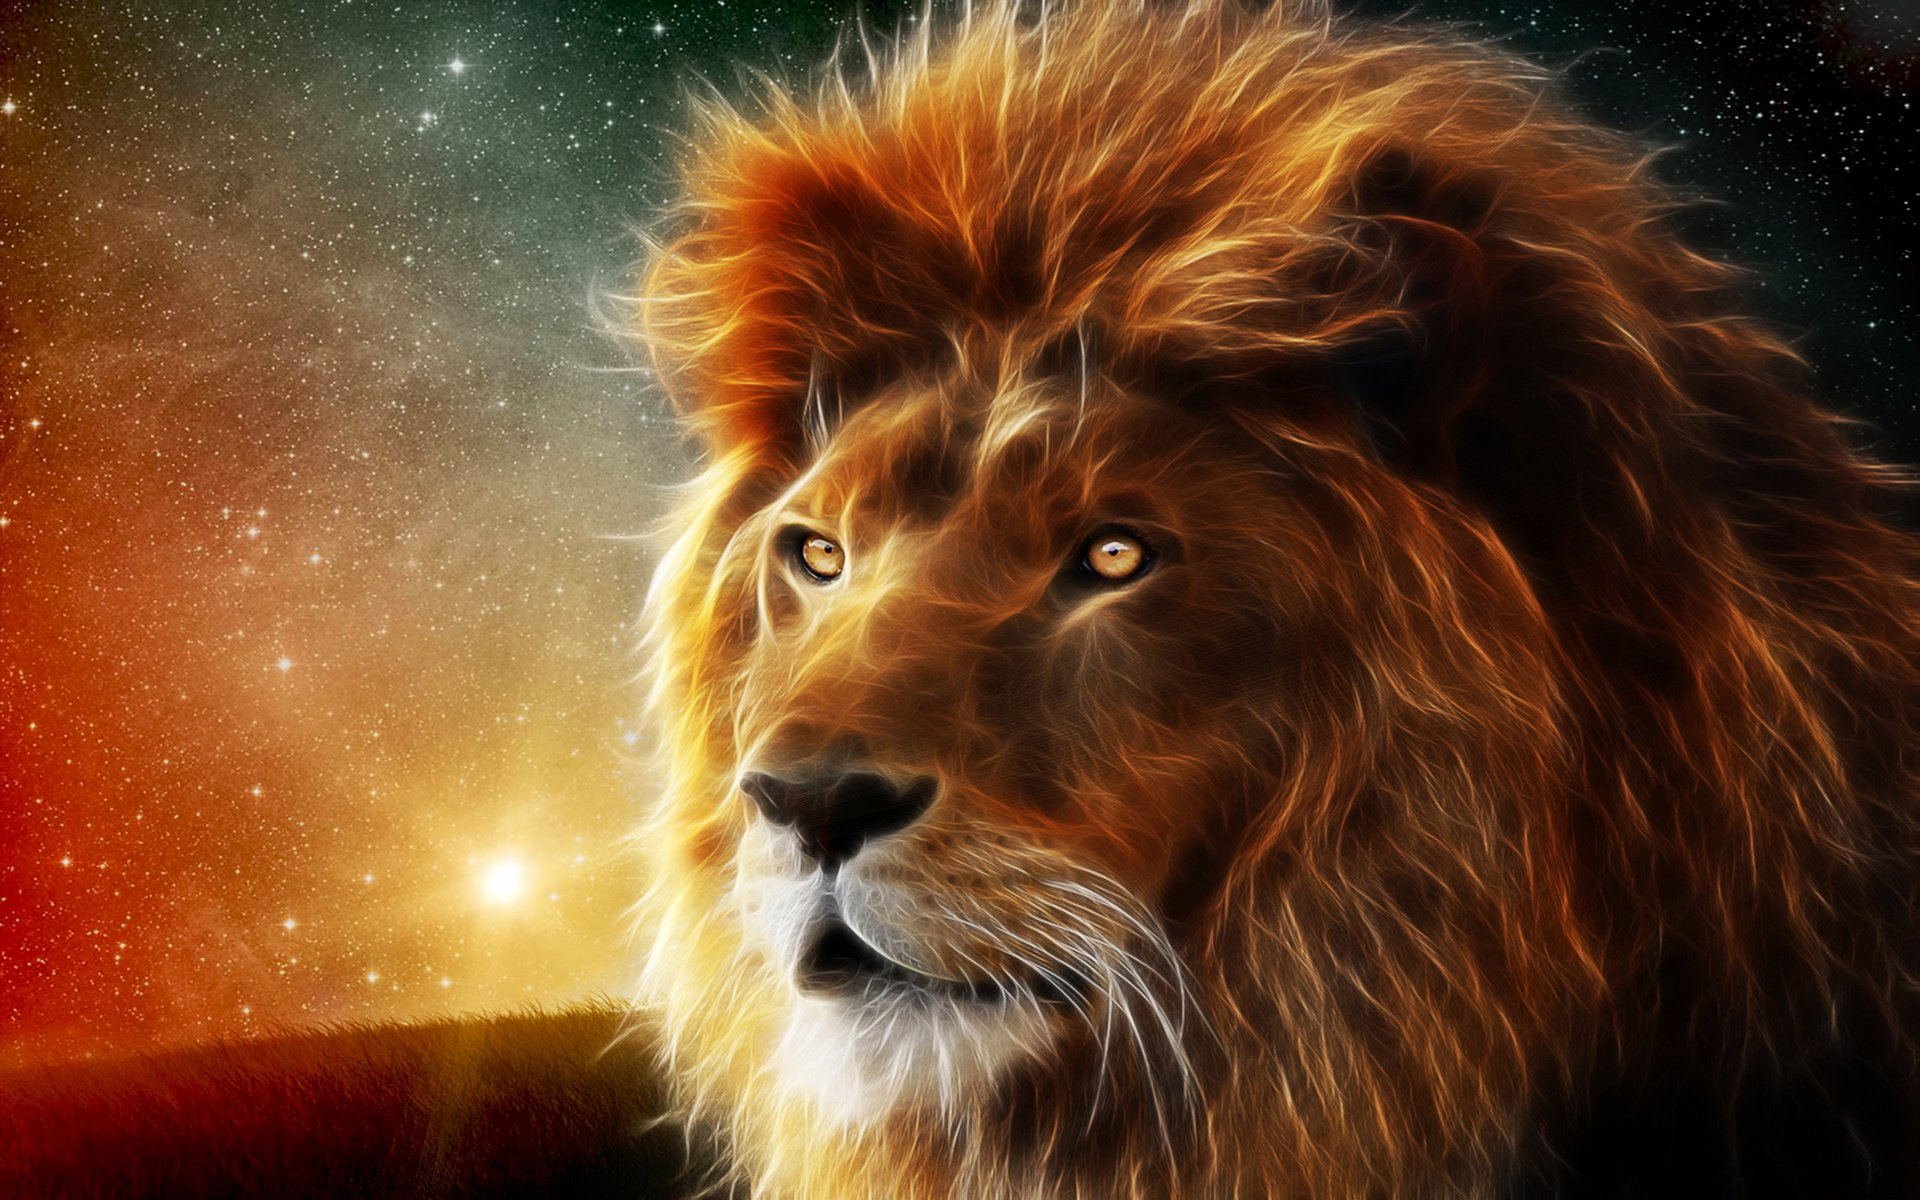 Wallpaper Lion